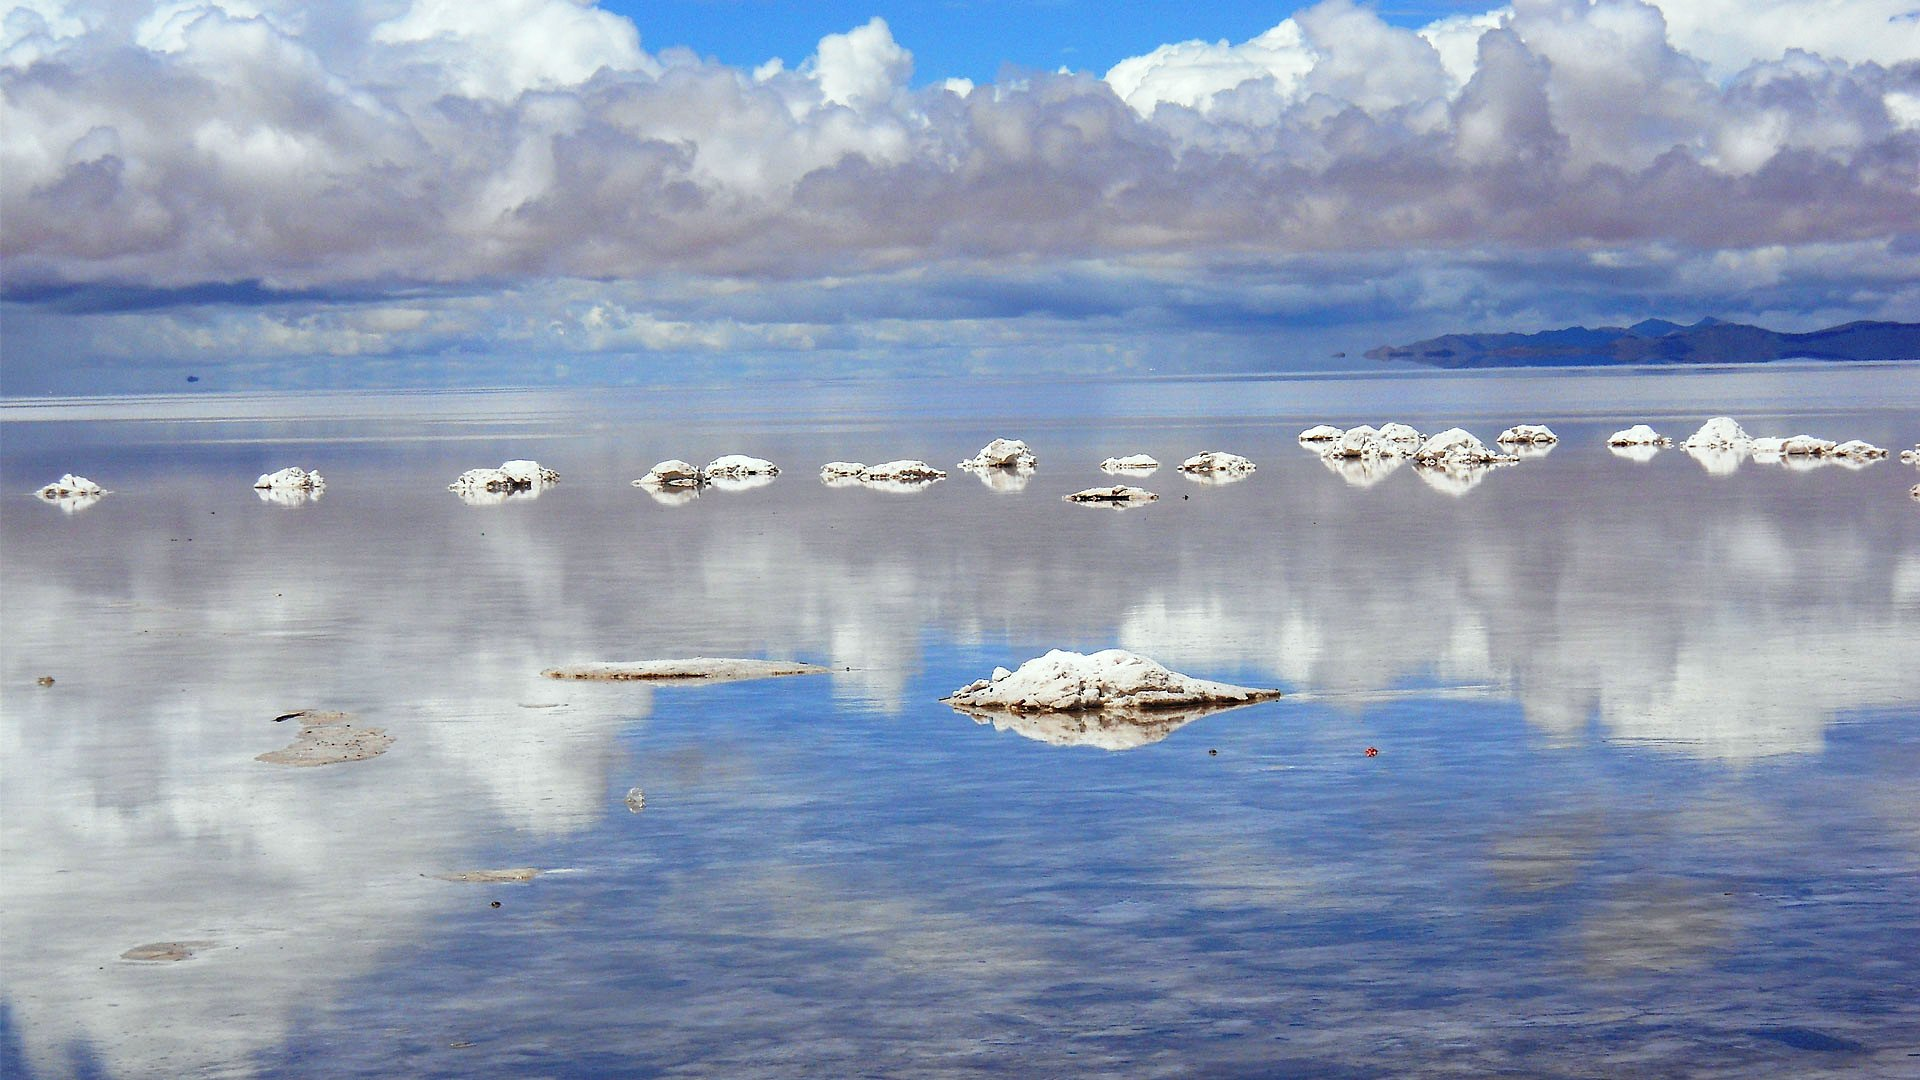 The Salar de Uyuni salt flats in Bolivia HD Wallpaper Background 1920x1080